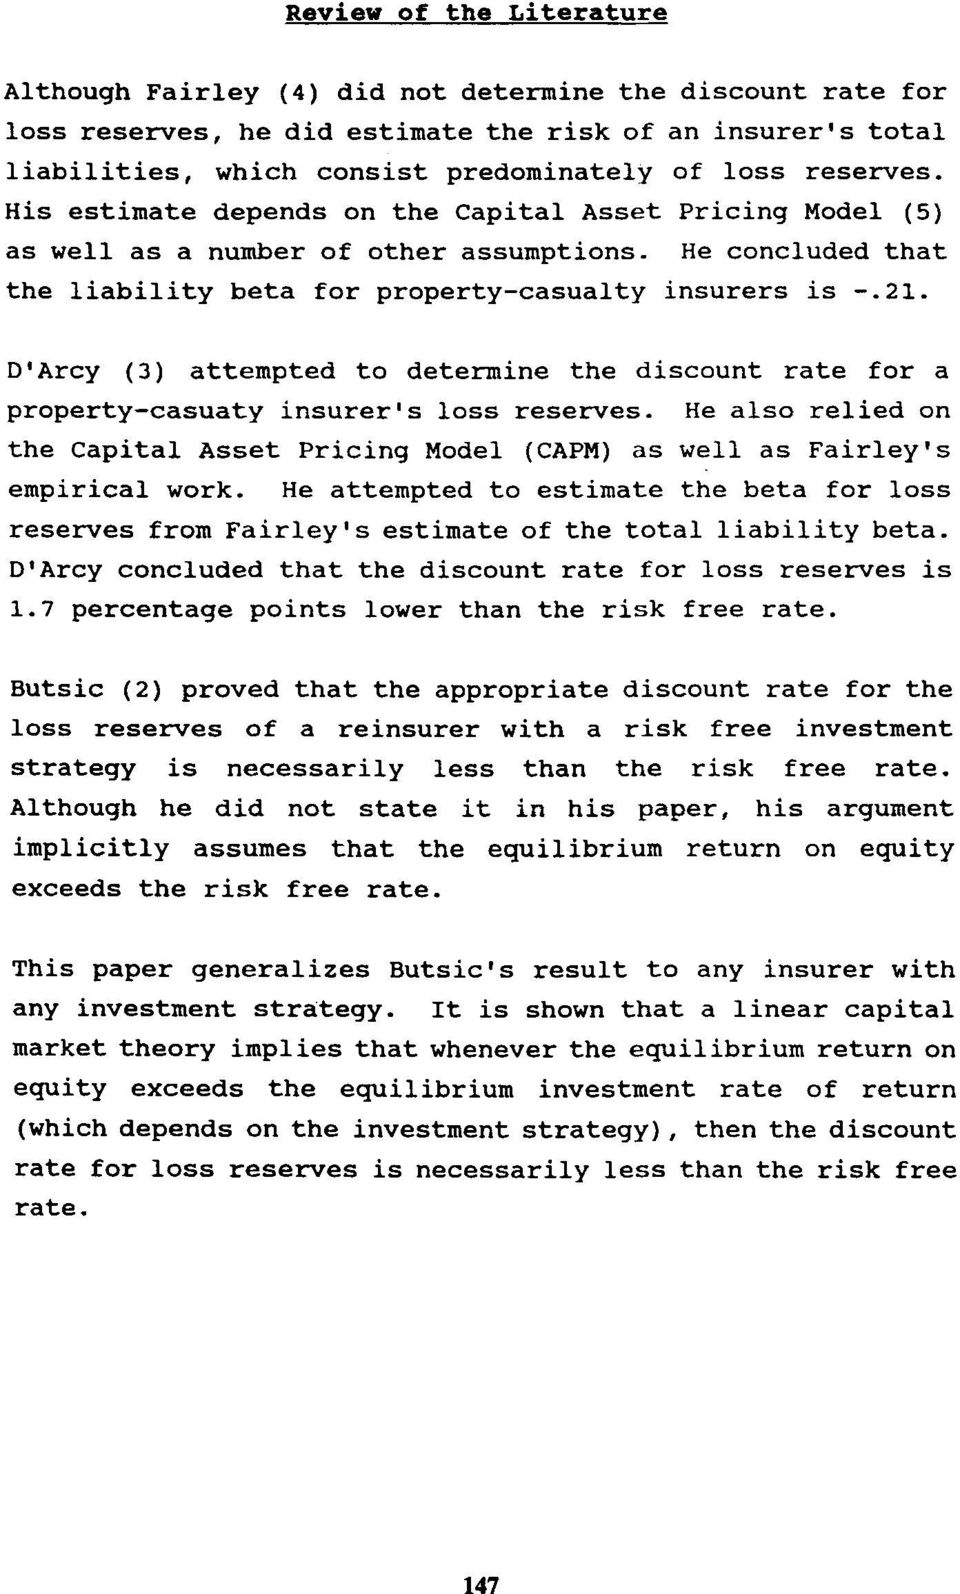 D'Arcy (3) attempted to determine the discount rate for a property-casuaty insurer's loss reserves. He also relied on the Capital Asset Pricing Model (CAPM) as well as Fairley's empirical work.